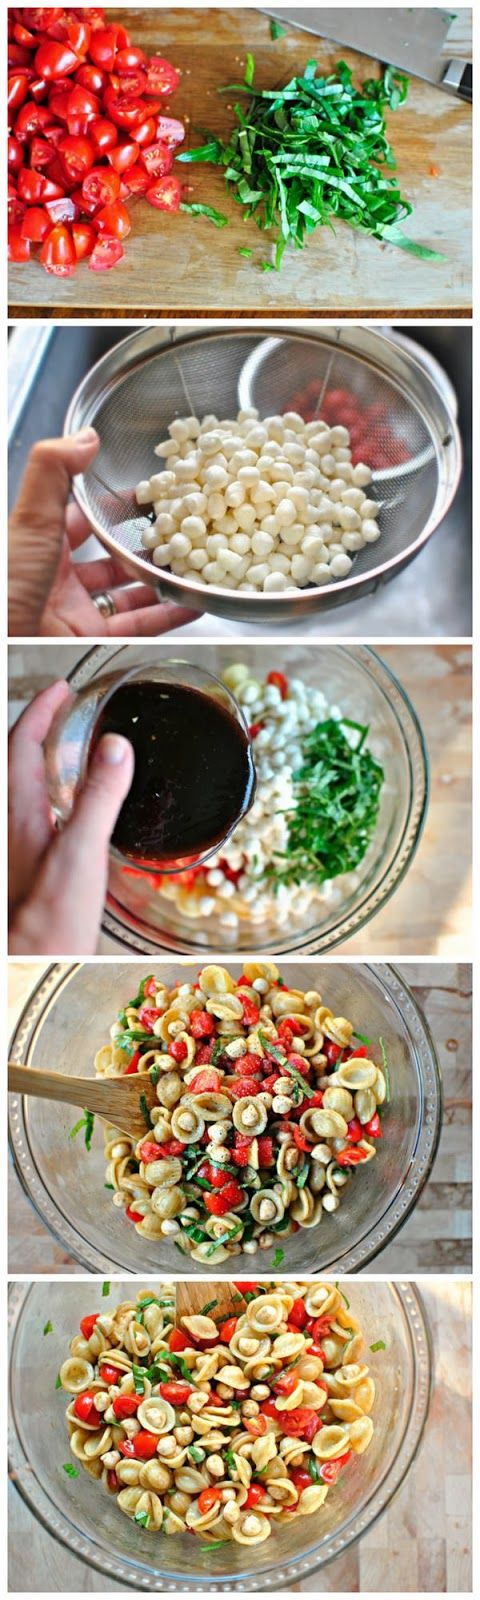 Caprese Pasta Salad - Recipe Favorite Ingredients 2 cups dried Orecchiette Pasta, cooked as directed on the package 1 pint Grape Tomatoes, quartered 1 container Fresh Mozzarella Pearls {or 1 ball fresh mozzarella, cubed small} 1 cup Fresh Basil, sliced into ribbons Kosher Salt and Black Pepper FOR THE BALSAMIC VINAIGRETTE: 2 Cloves of Fresh Garlic, squeezed through a garlic press 1/3 cup Balsamic Vinegar 3 tablespoons Olive Oil -